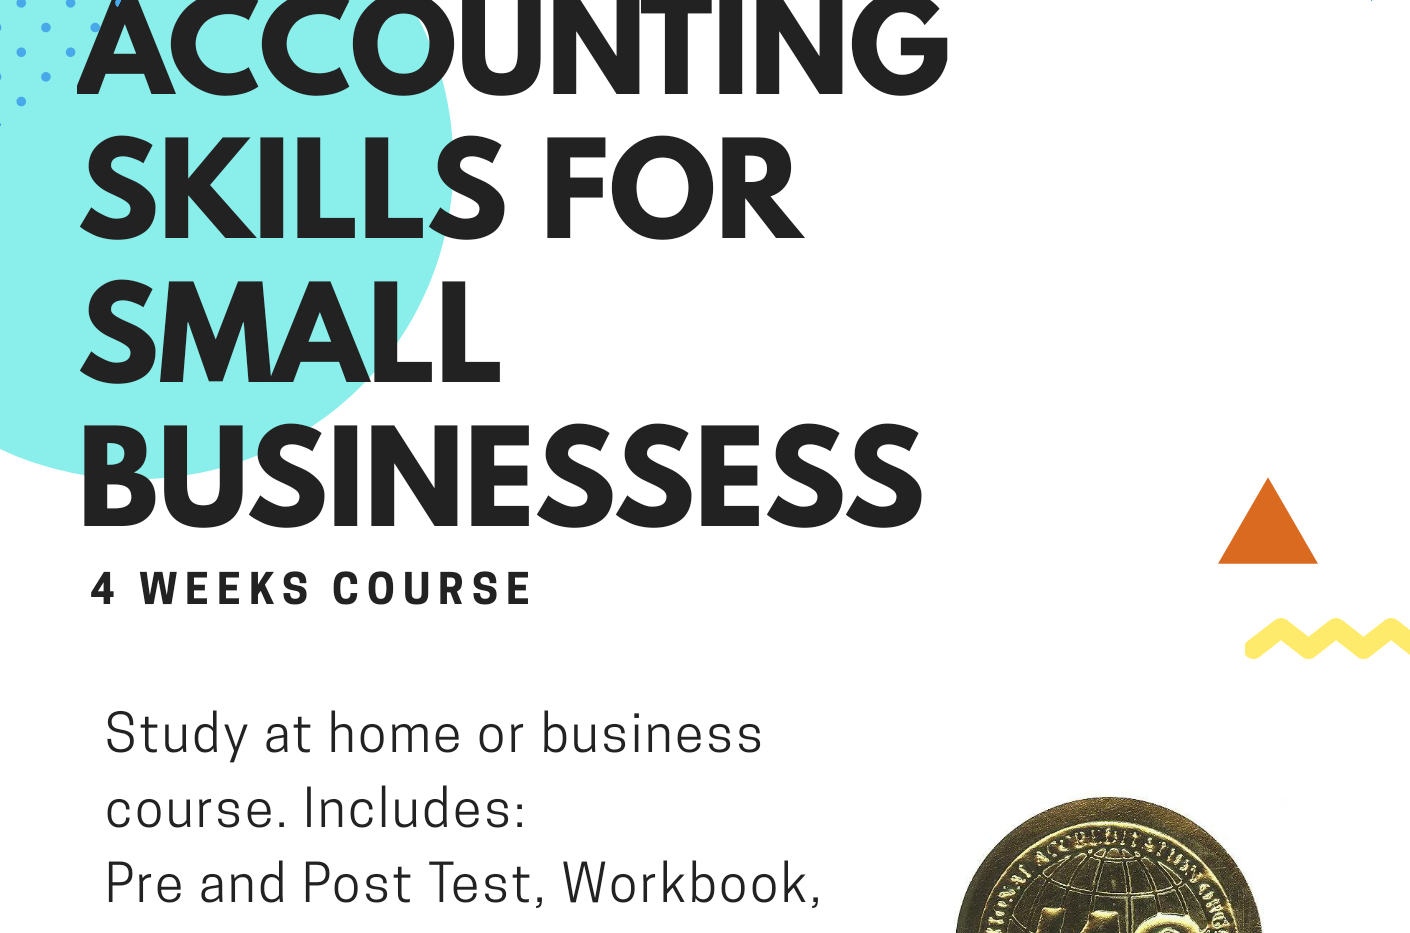 accounting skills for small businesses.p